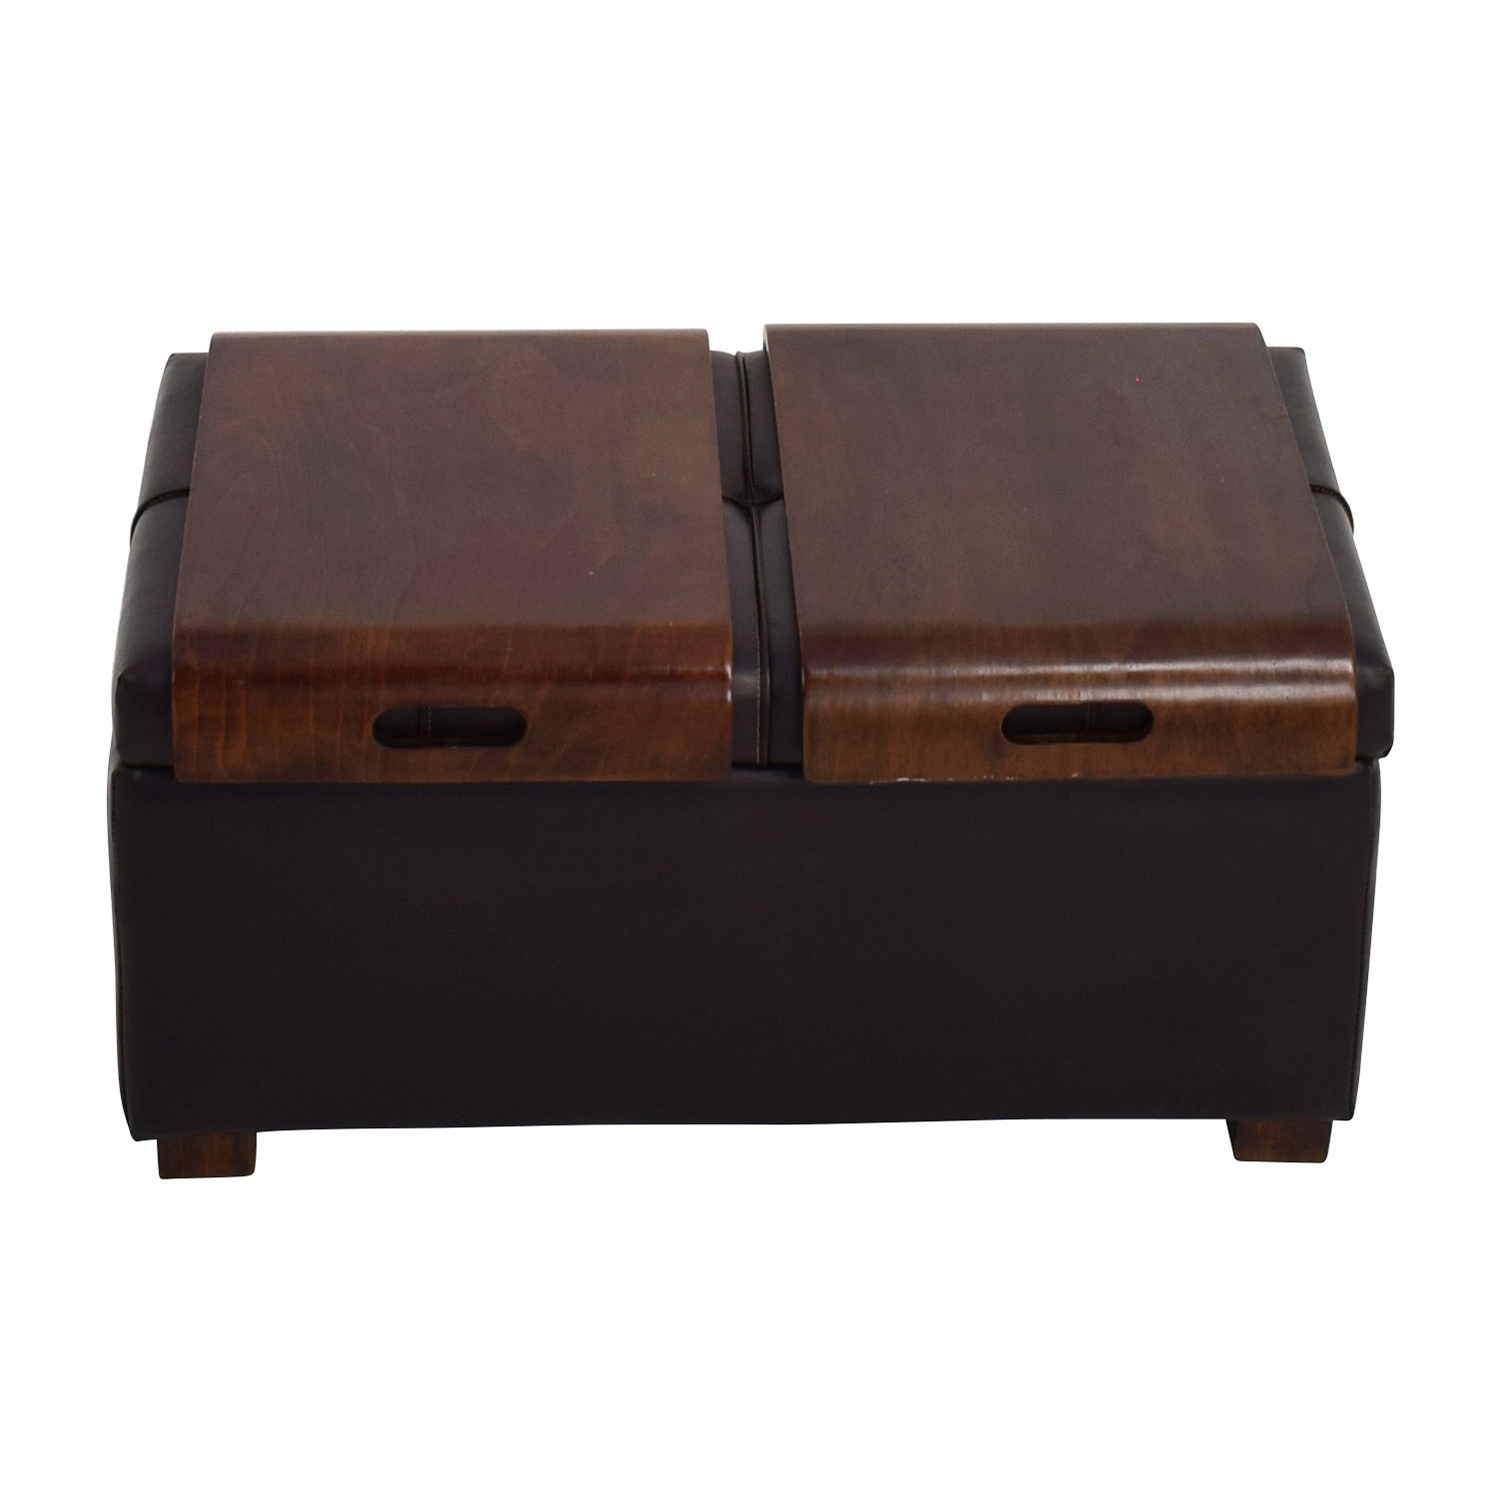 Raymour and Flanigan Raymour & Flanigan Storage Ottoman with two trays nyc